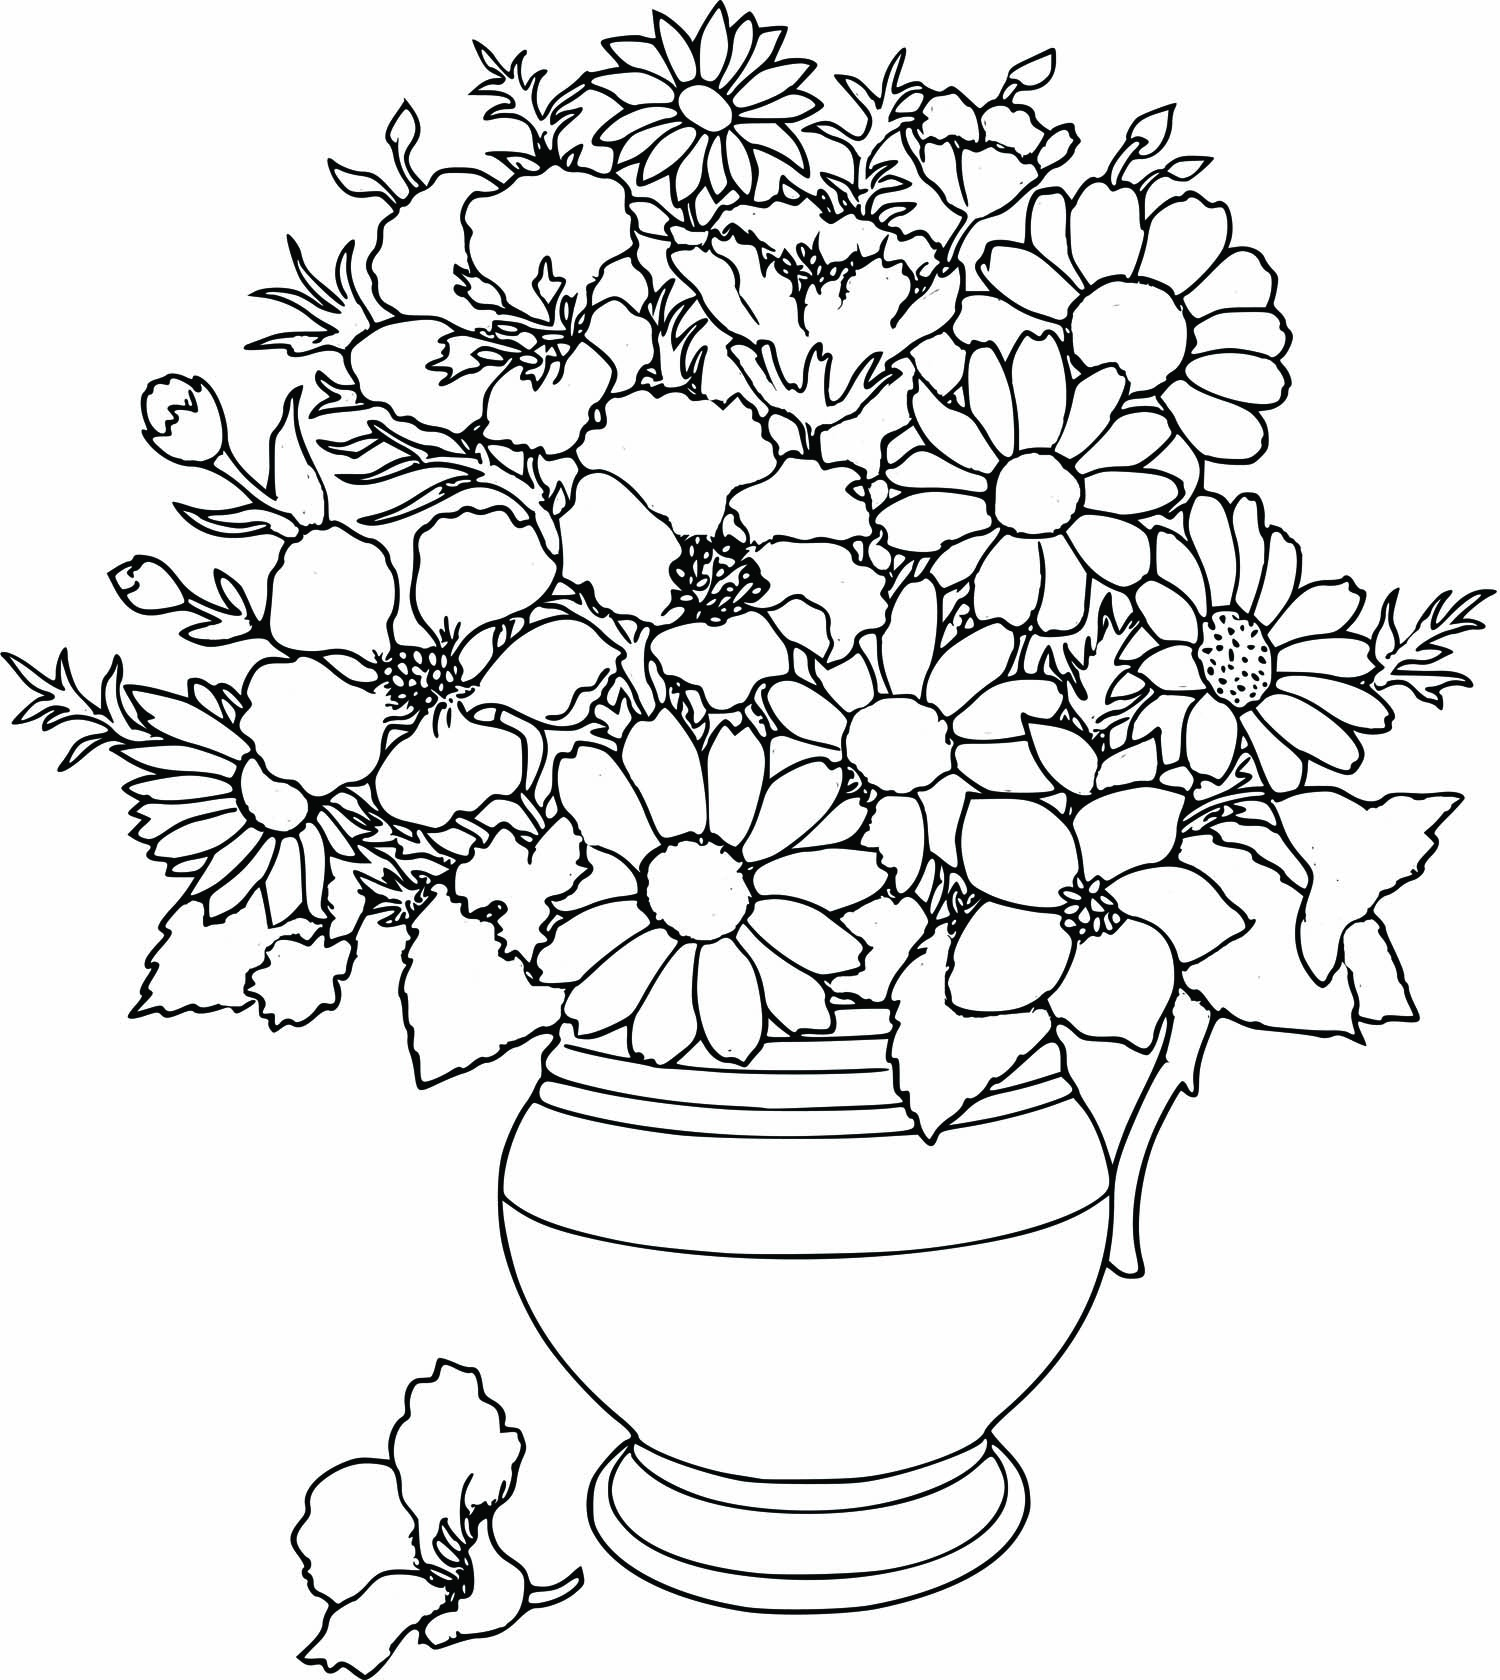 1500x1680 Flower Arrangement Coloring Pages Elegant Mothers Day Flowers